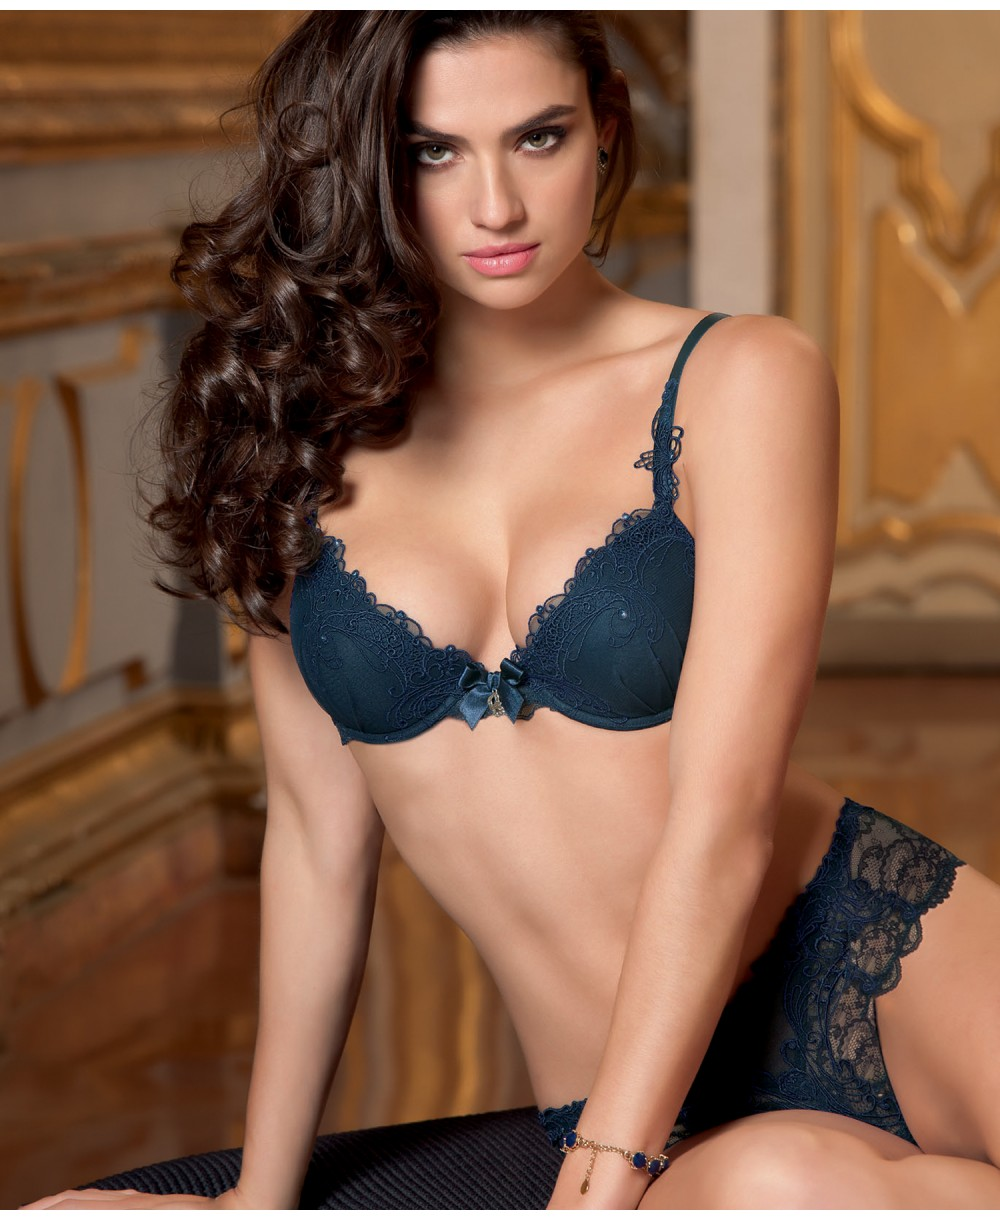 fe1d672bc4 Find every shop in the world selling contour plunge bra at PricePi ...